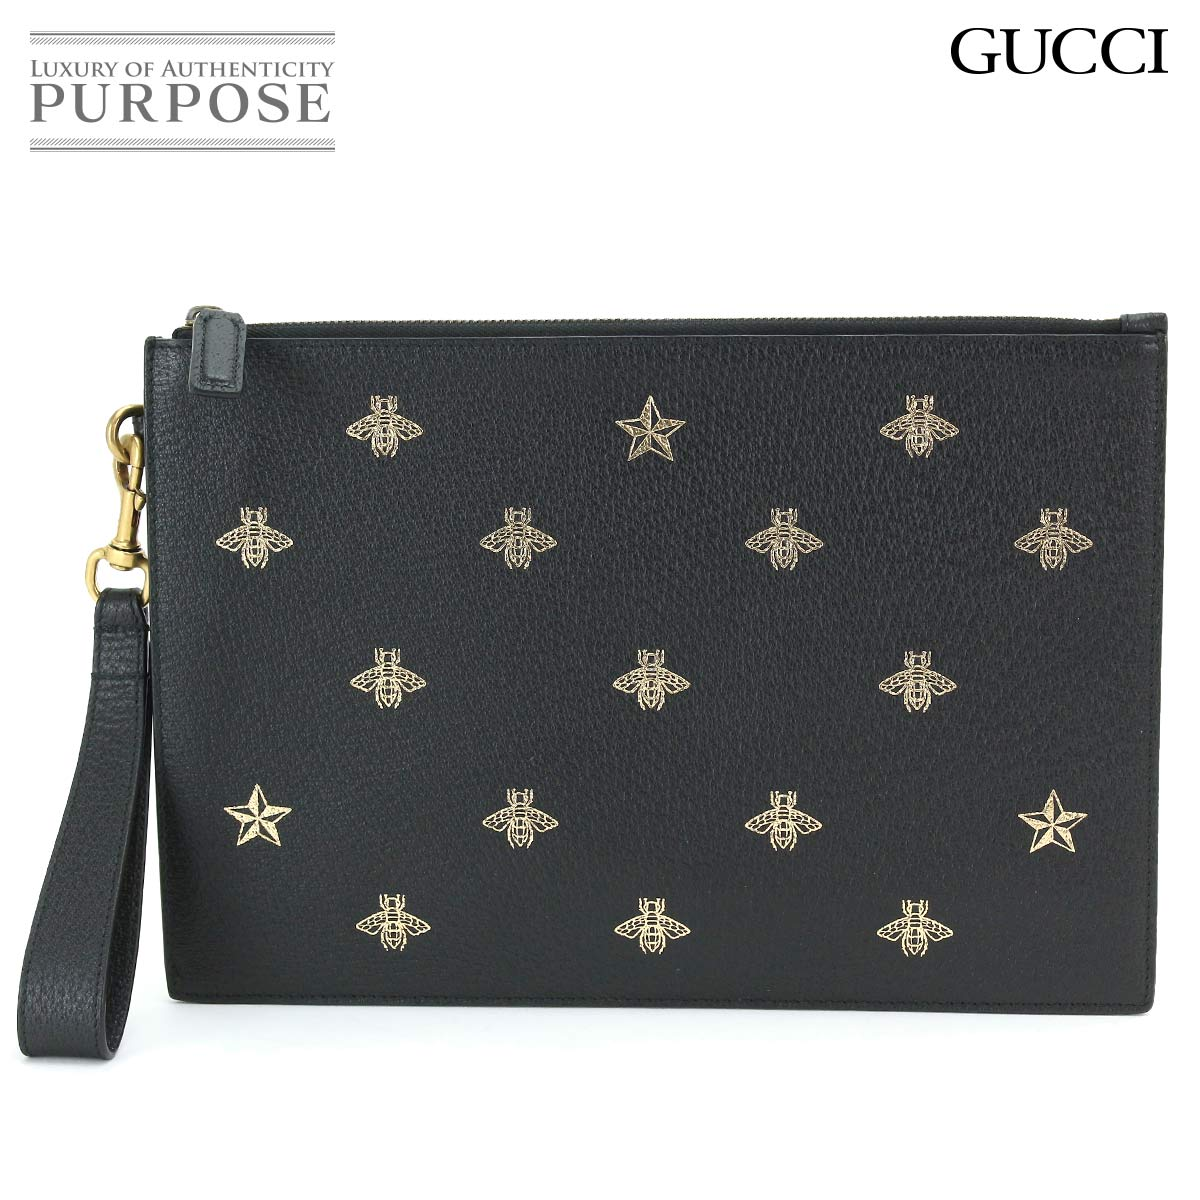 limited price search for official best value Gucci GUCCI B star clutch bag porch leather black gold 495066 0956